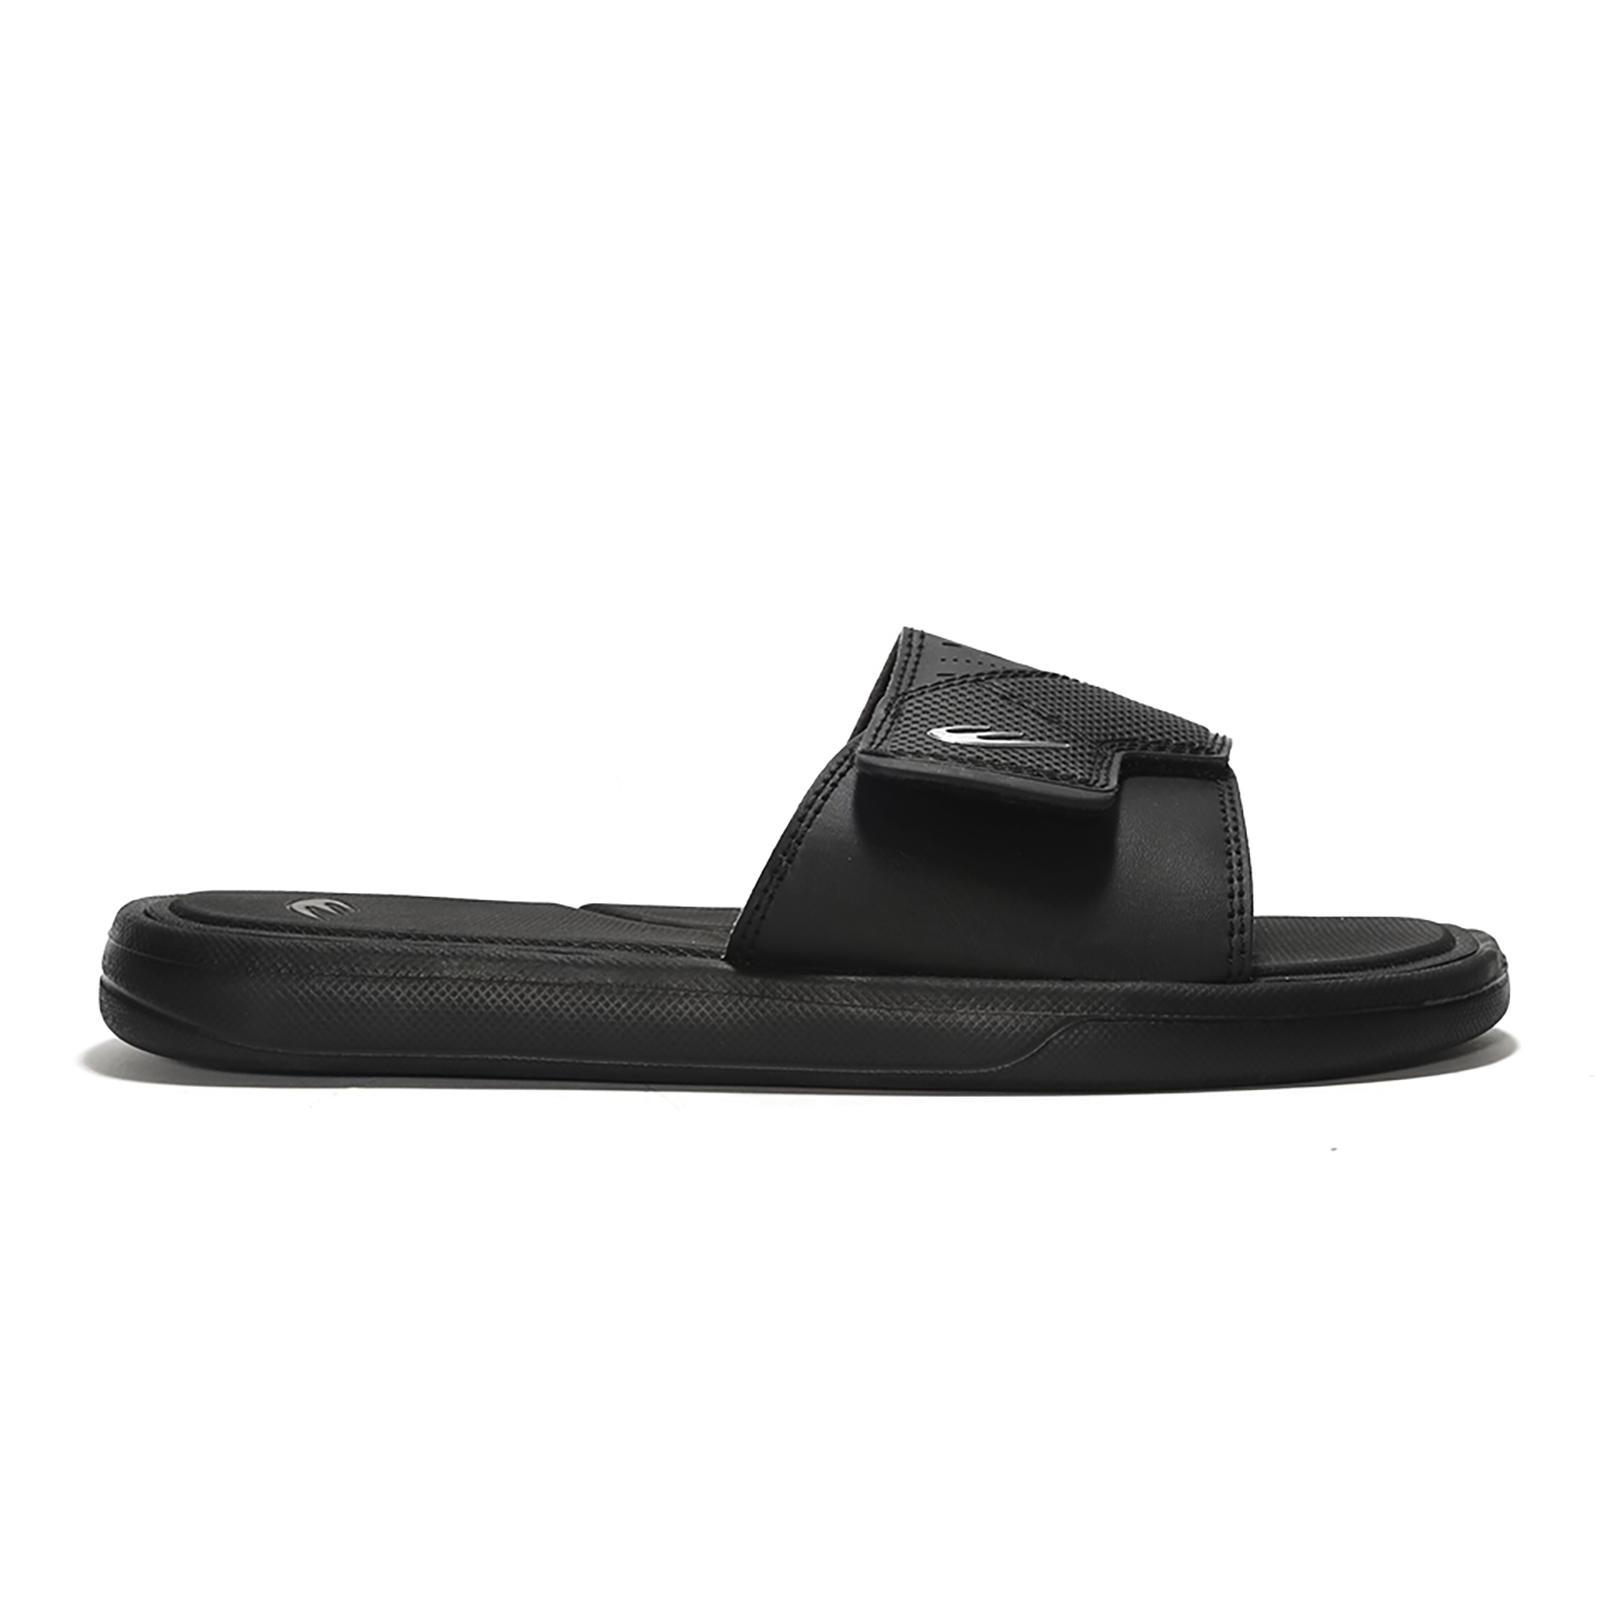 World Balance AFTER PLAY Men's Slippers